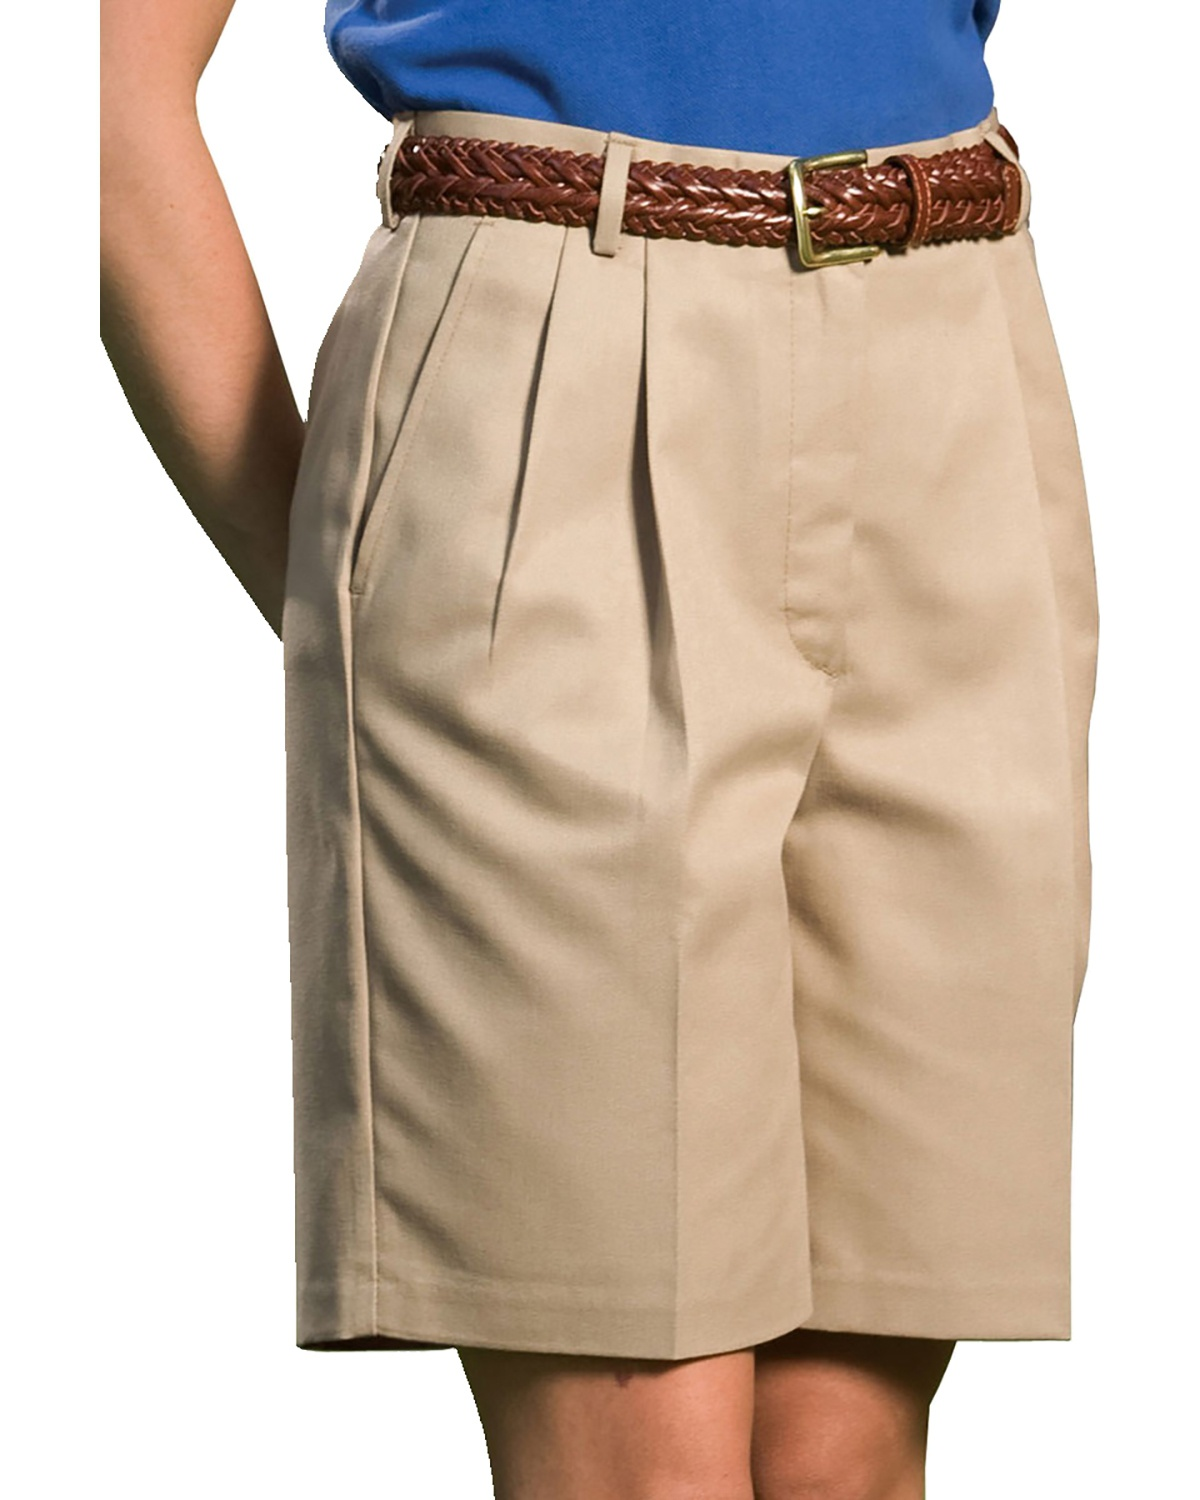 'Edwards 8419 Ladies' Business Casual Pleated Chino Short'